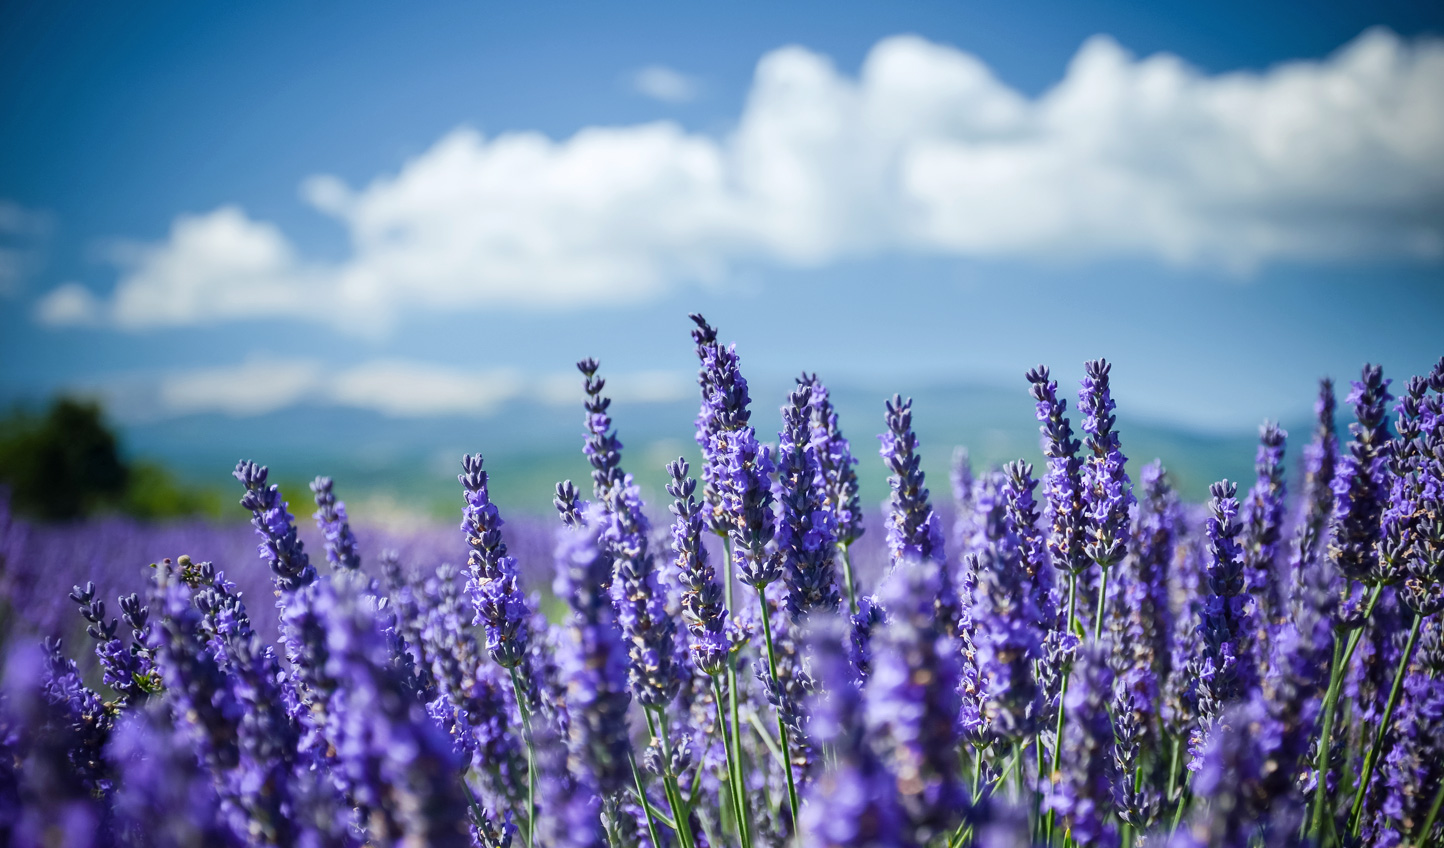 Breathe in the sweet smell of Provence